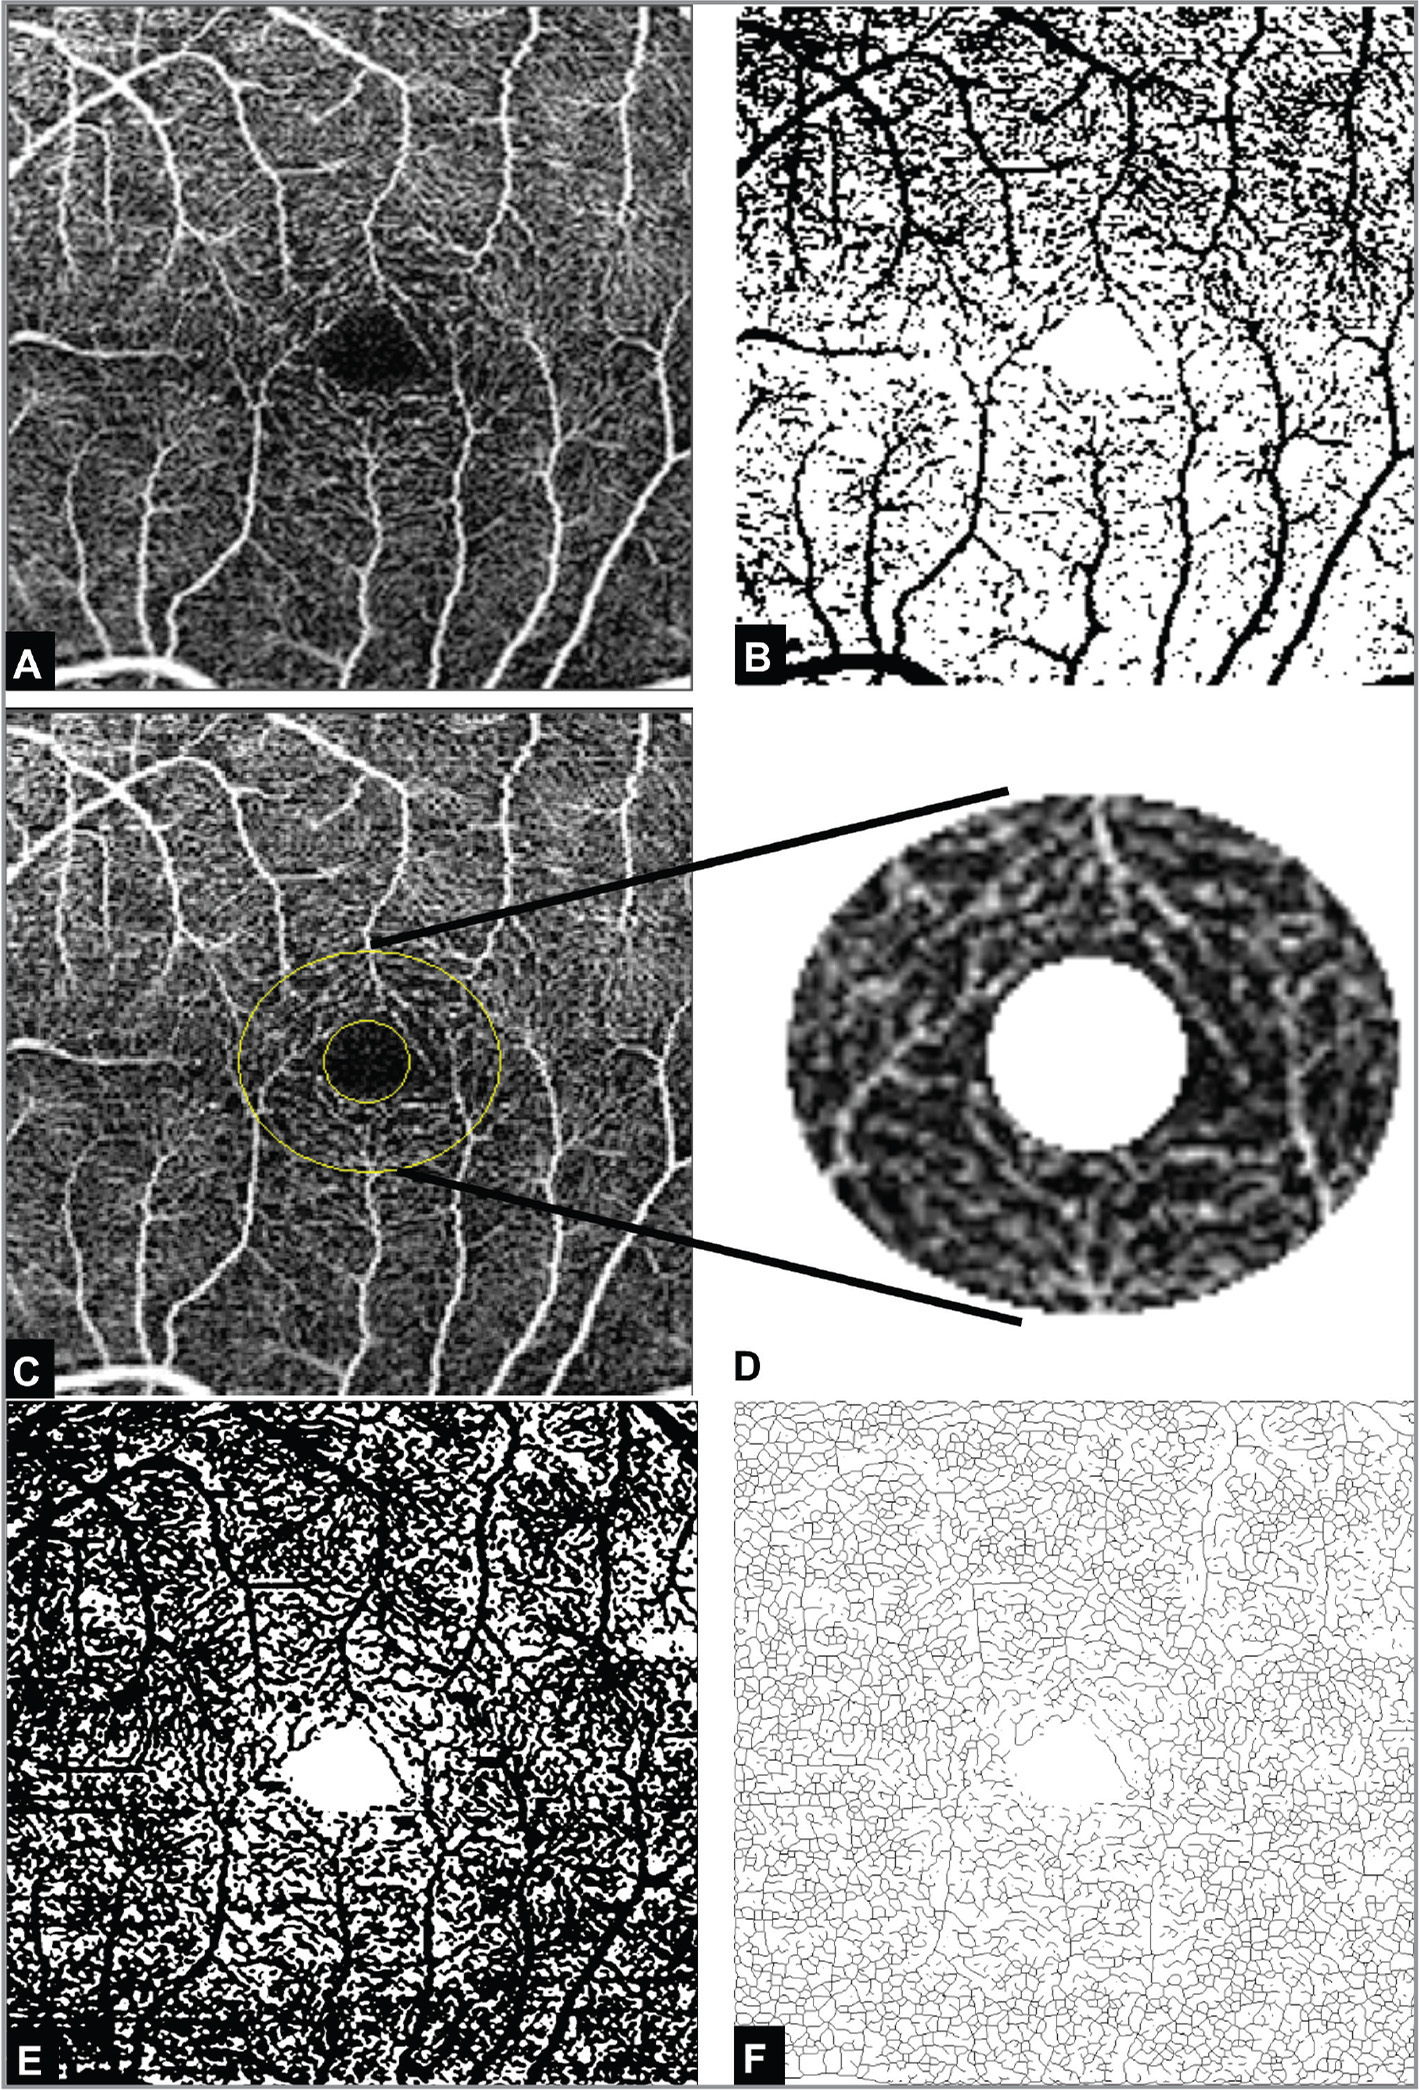 Standardized vessel density measurement. (A) The original angiography en face slab. (B) Binarized image before threshold adjustment. (C) The selected 1-mm diameter area after excluding the foveal avascular zone area. The mean value of the vessels in (D) was chosen as the threshold to binarize the image. (E) Demonstrating the binarized image after setting the standardized threshold. Note the change in vessel width compared to the original image. (F) The skeletonized image based on the standardized threshold image.